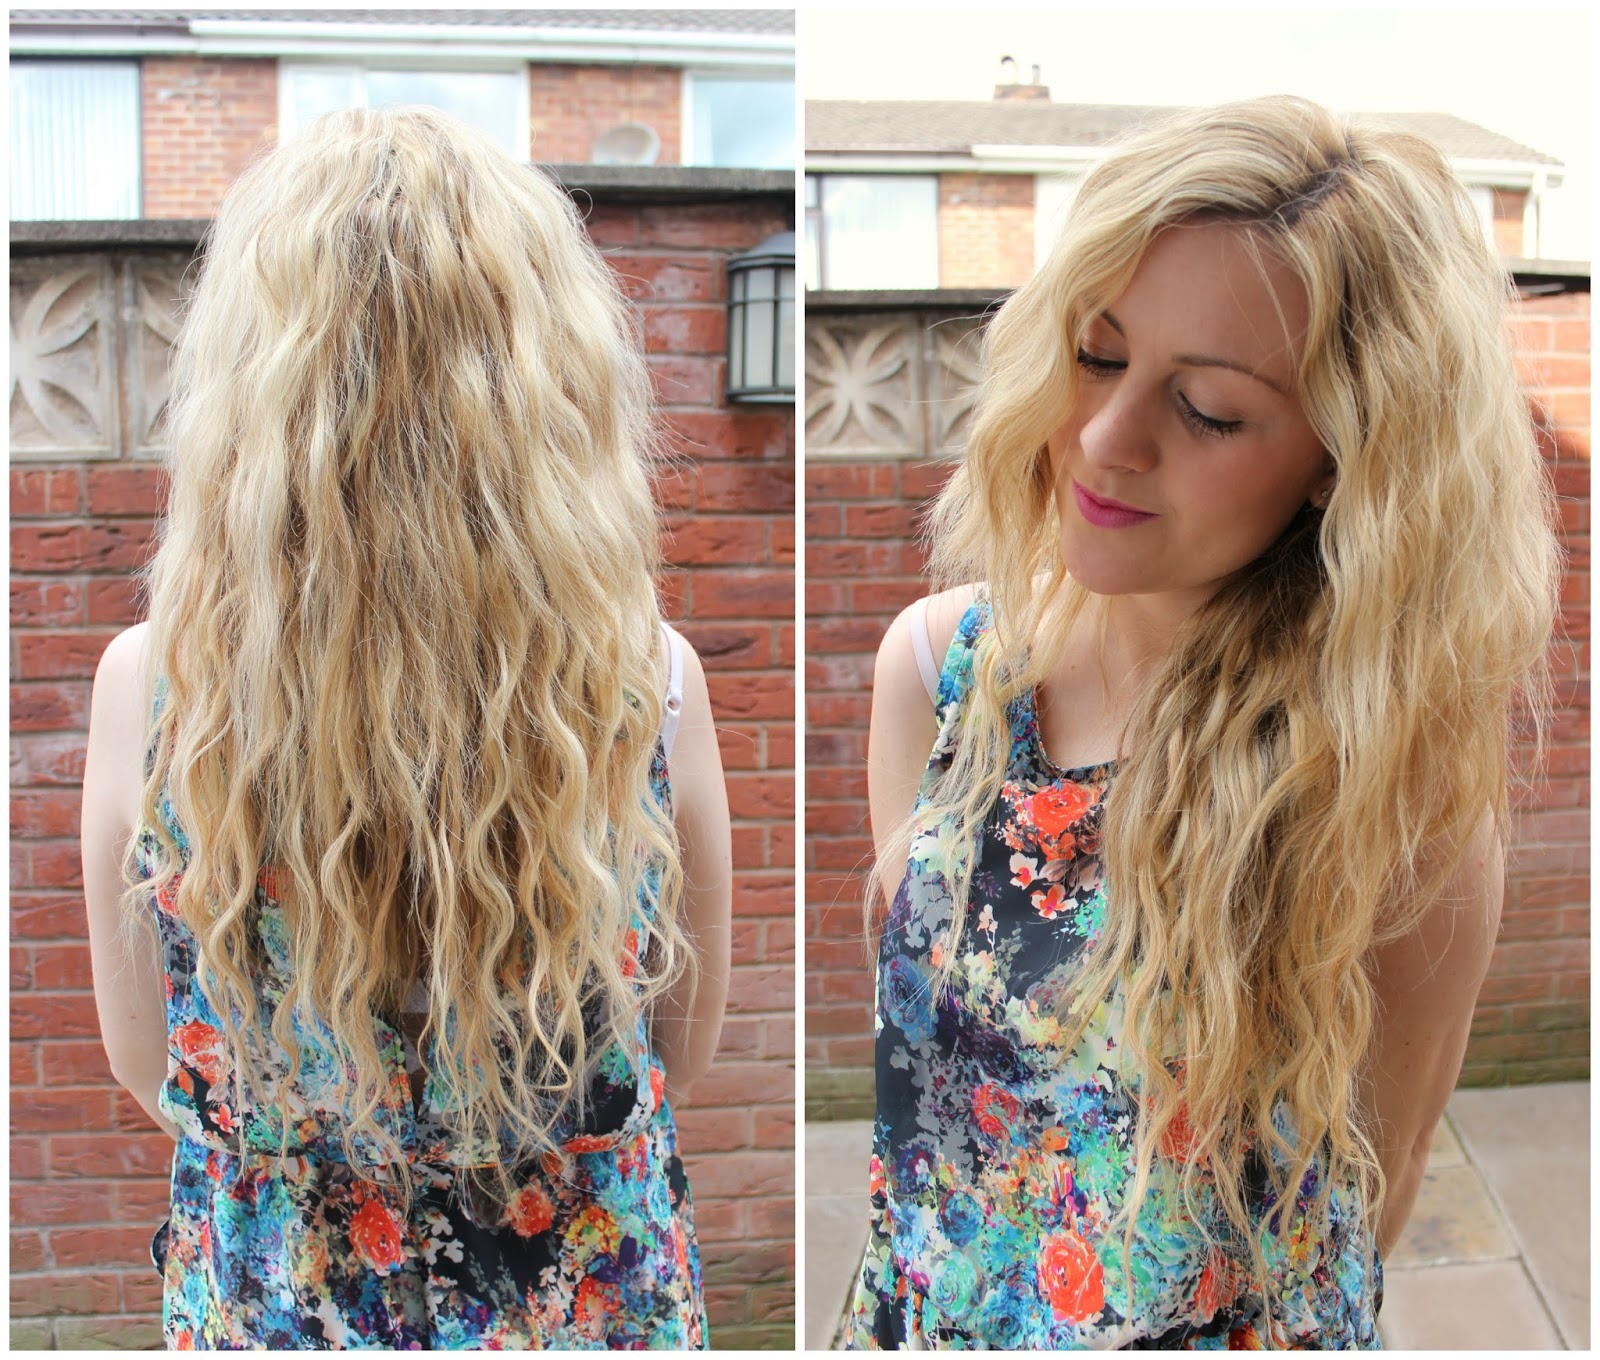 Imogen foxy locks foxy locks extensions in depth look quality review cliphair deluxe volume hair extensions through pmusecretfo Images